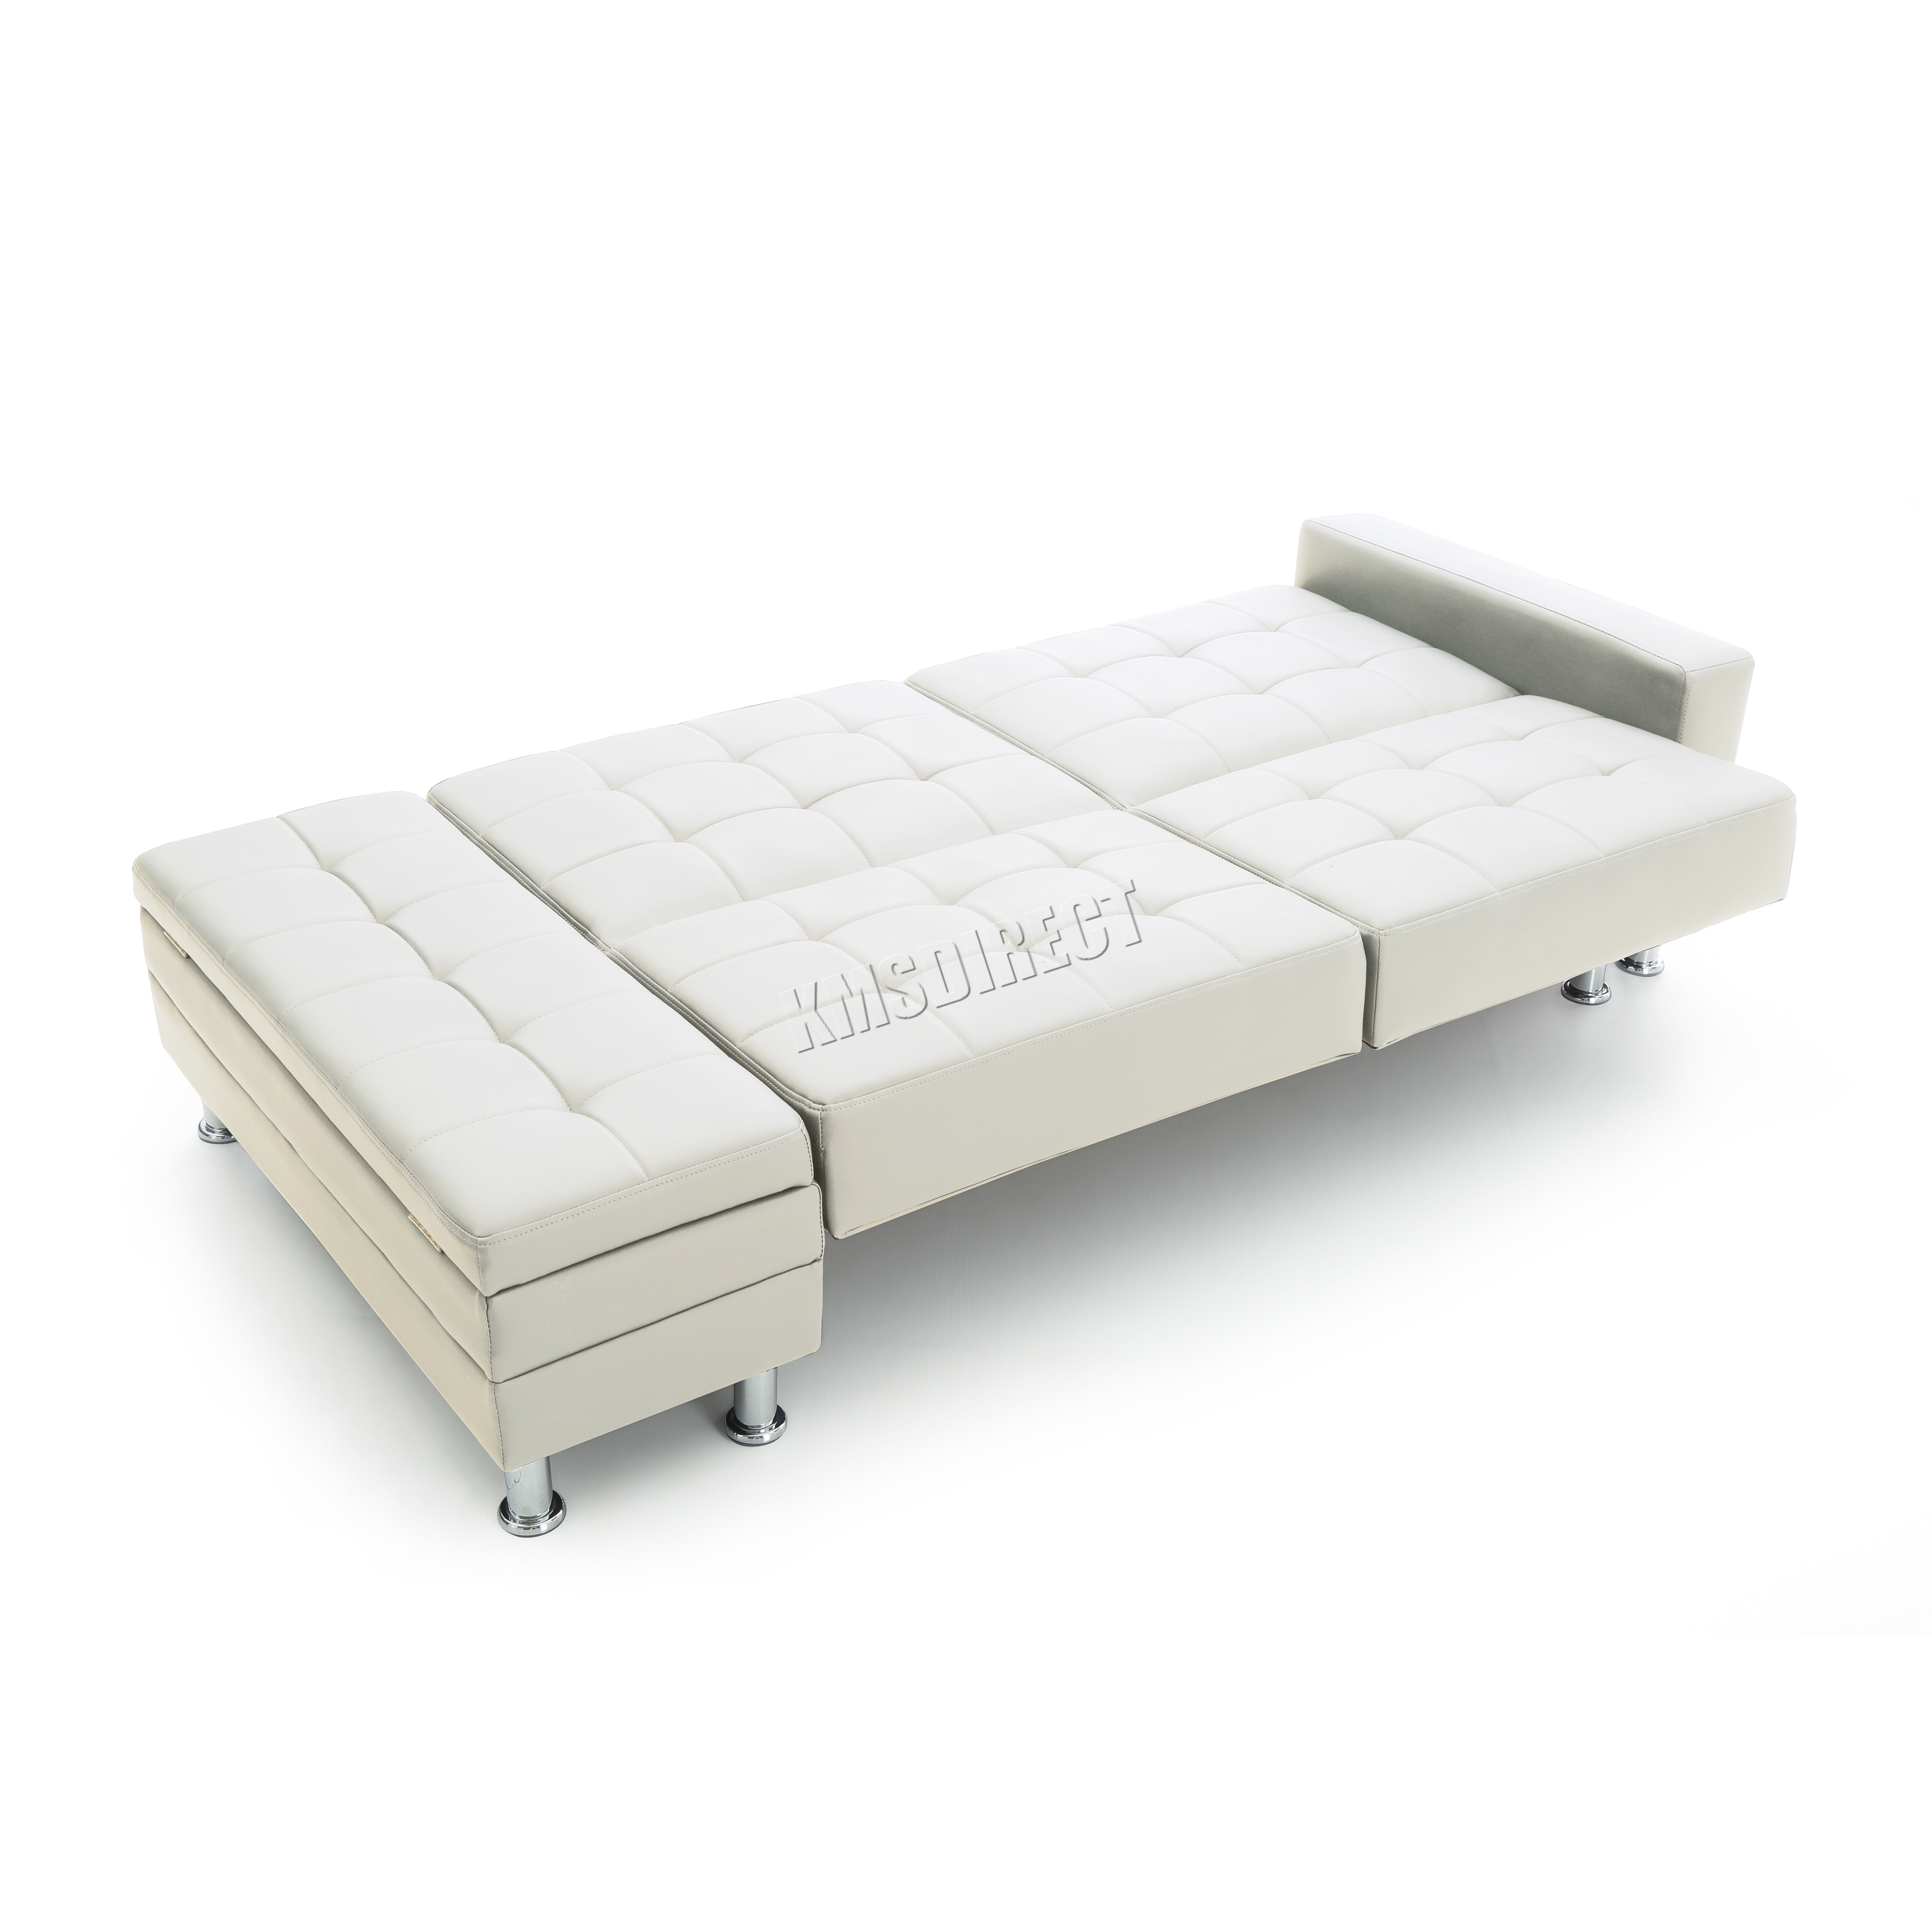 Foxhunter pu sofa bed with storage 3 seater guest sleeper for Sofa bed ottoman